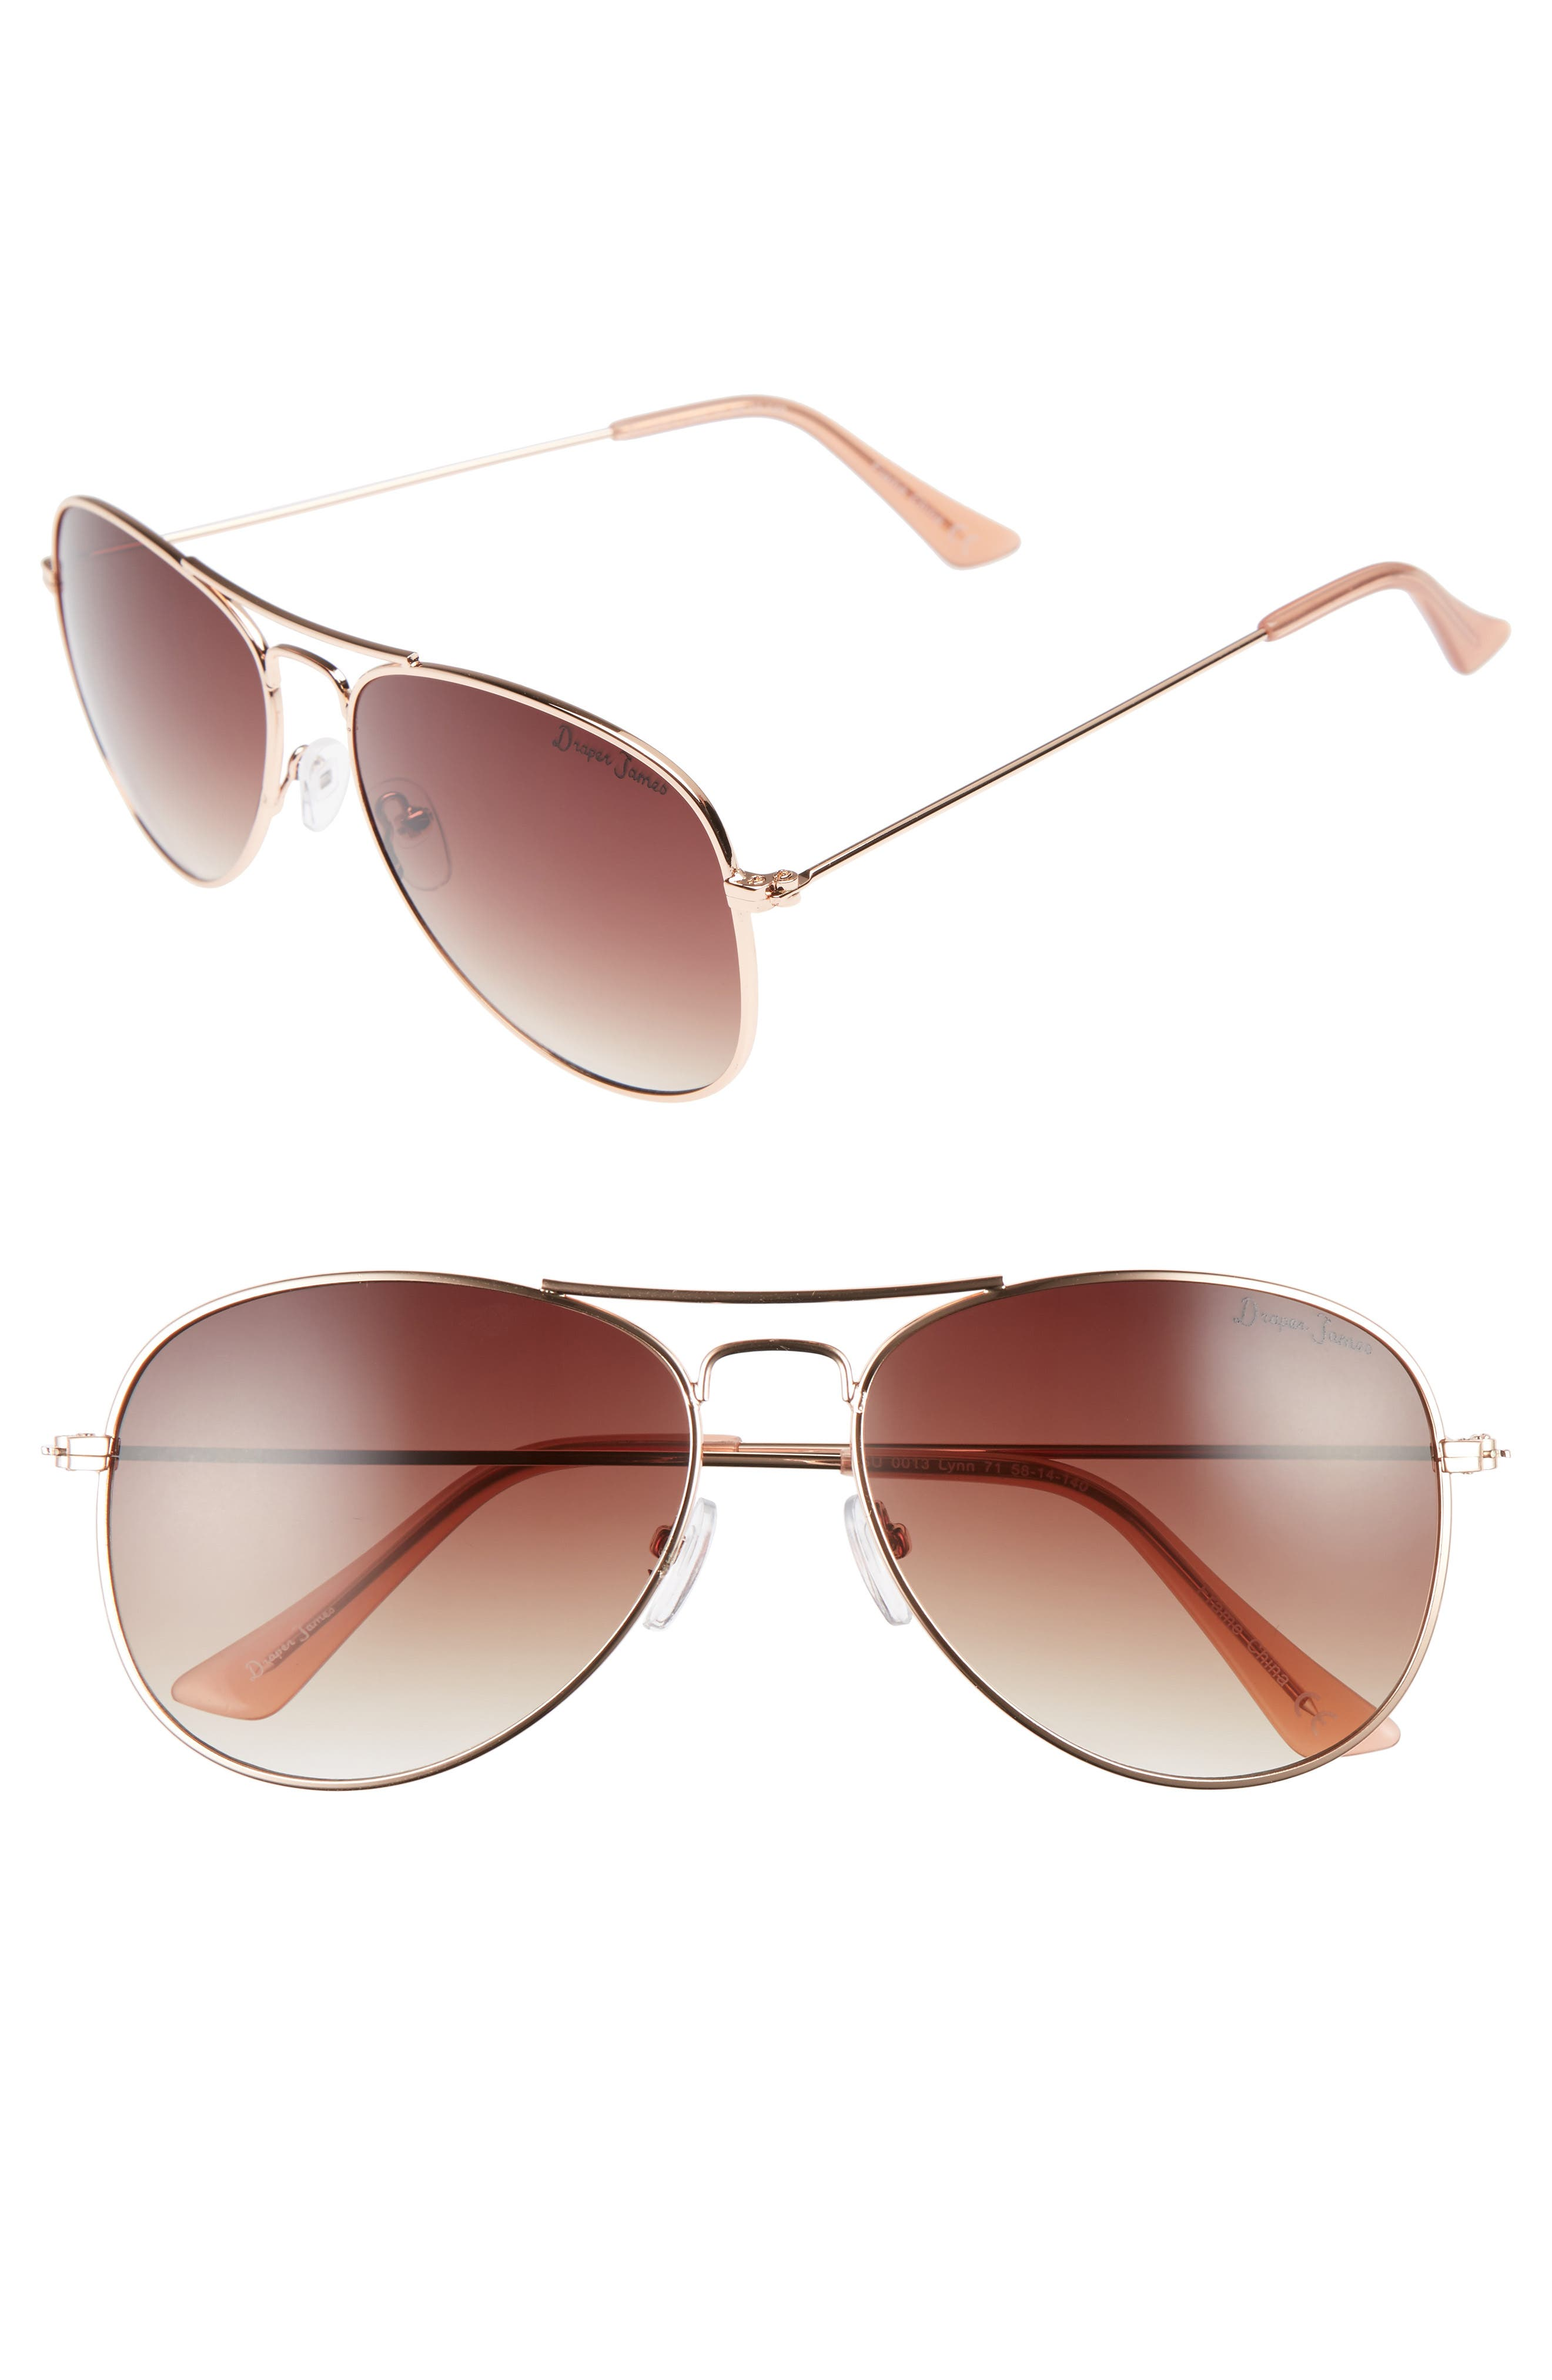 58mm Gradient Aviator Sunglasses,                             Main thumbnail 2, color,